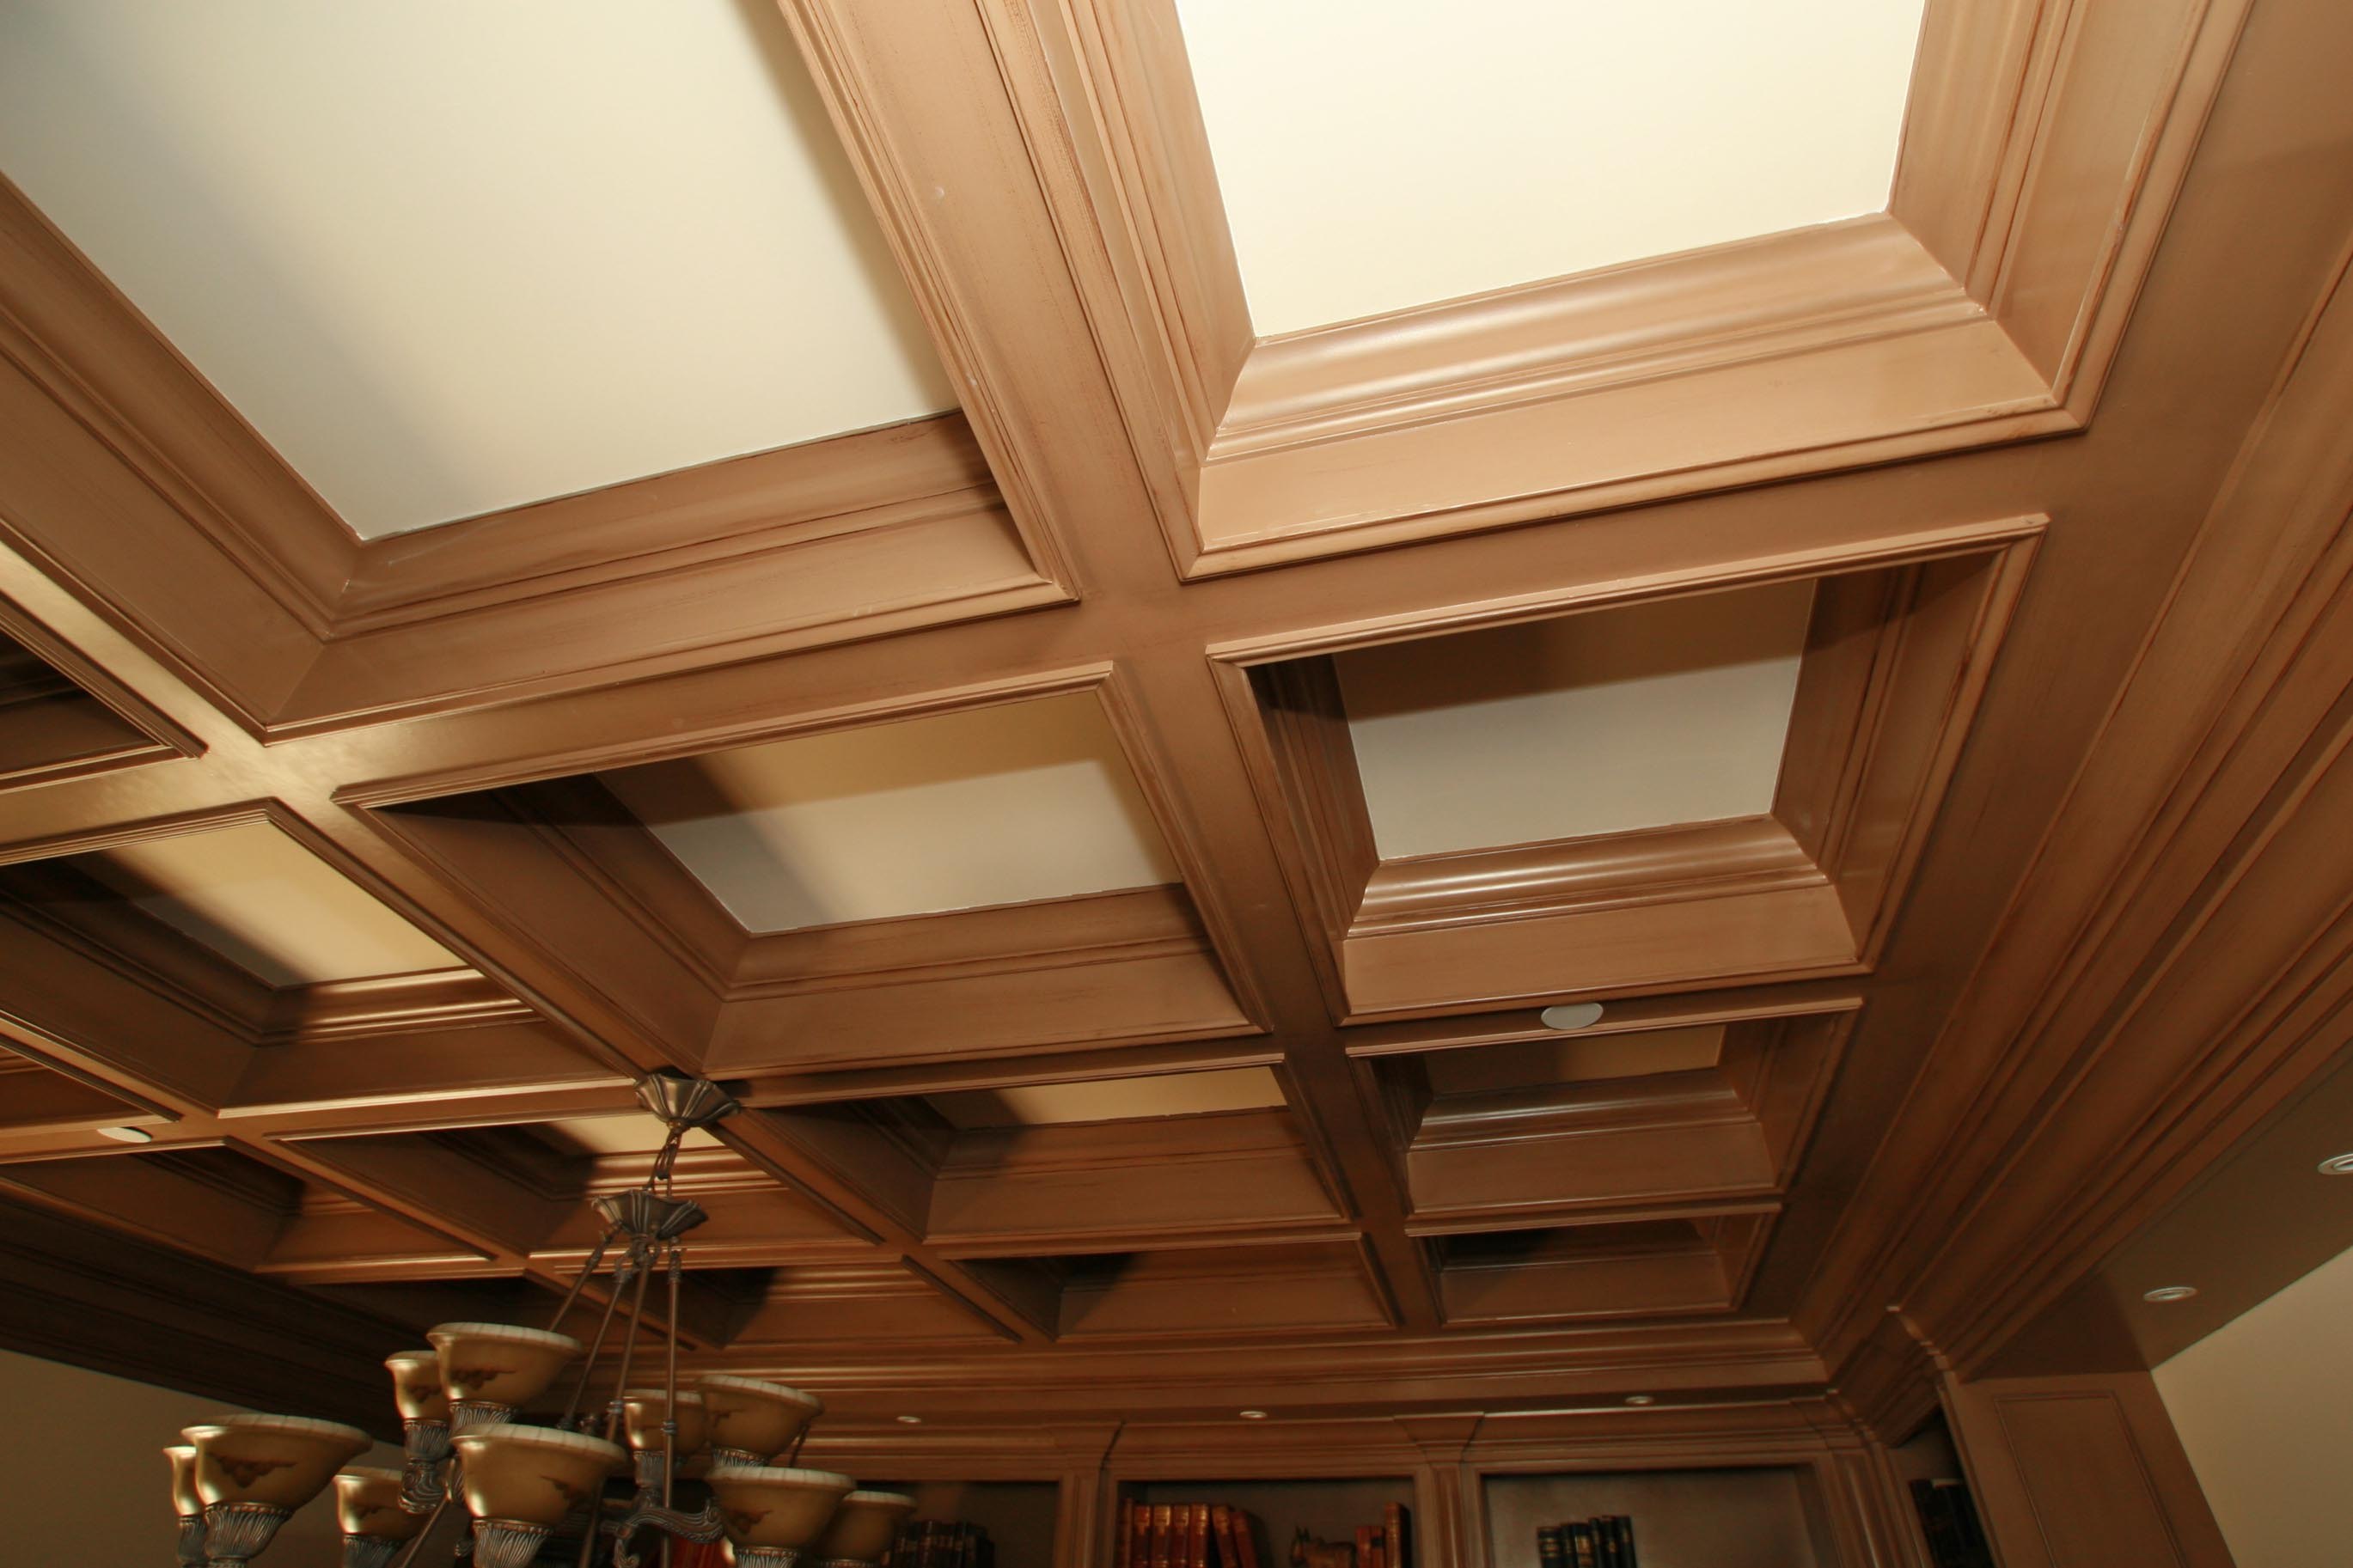 Paneling & Coffered Ceilings - Wood Desing and ArtWood Desing and Art